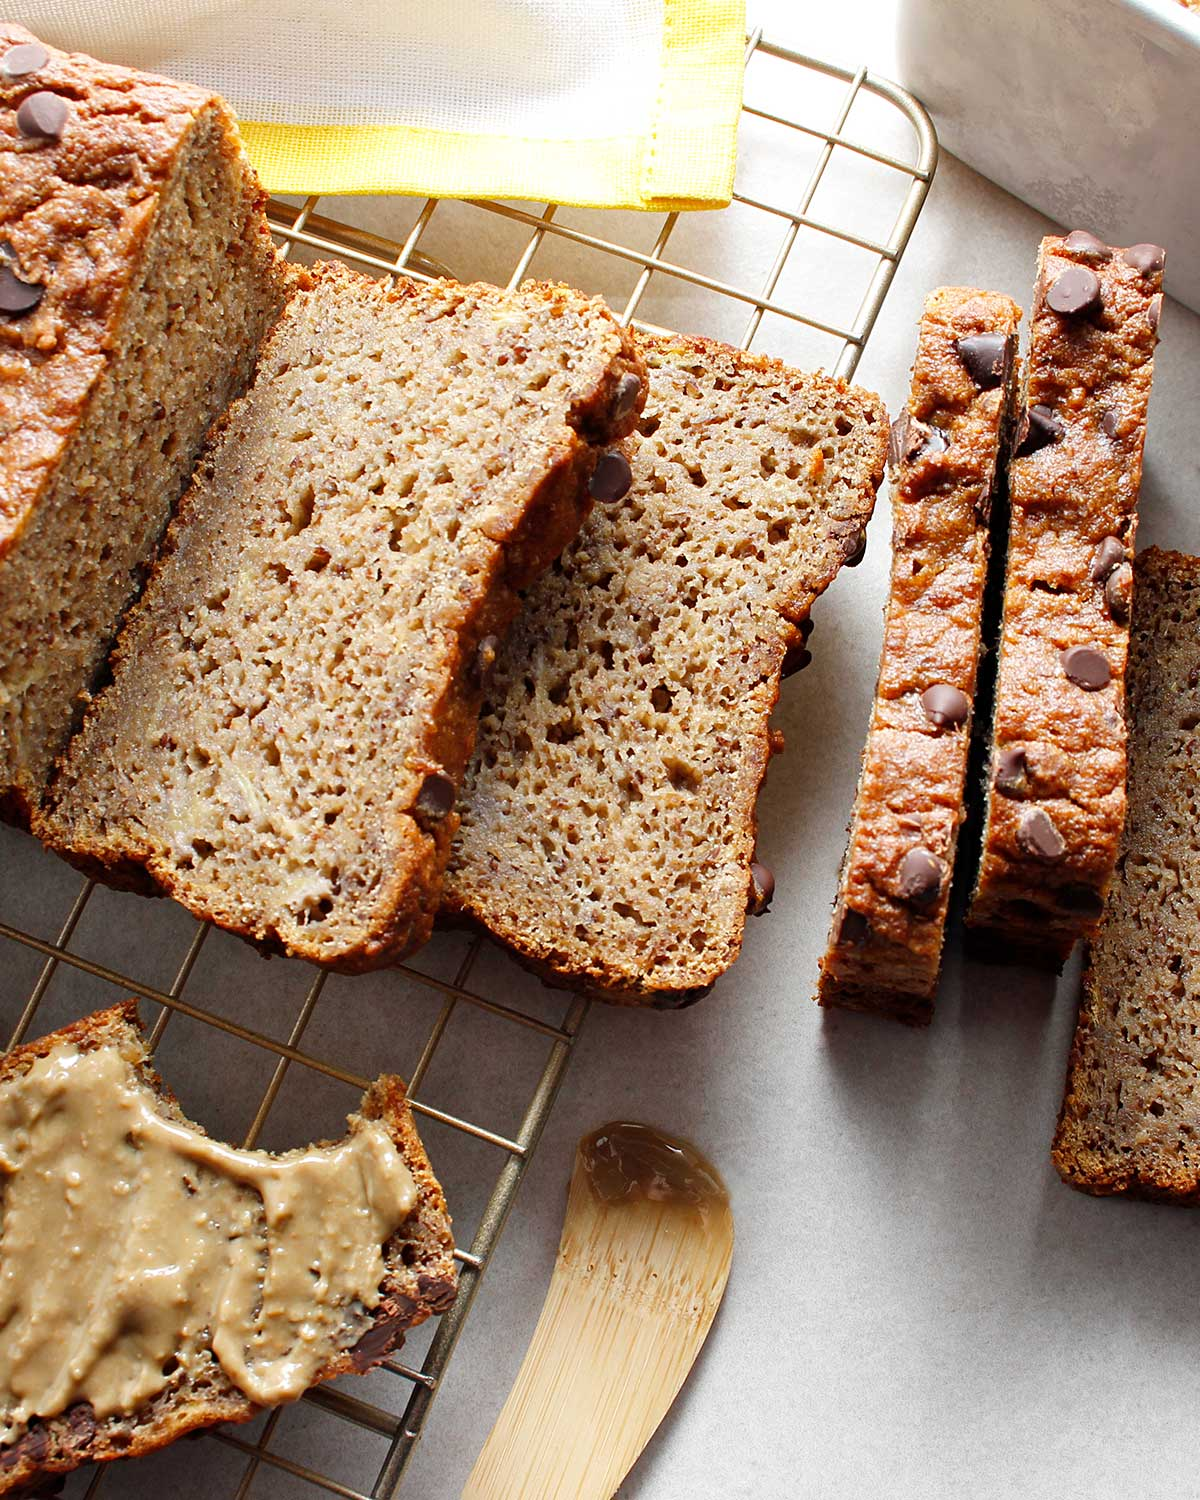 Close up of sliced grain-free banana bread with chocolate chips decorating the top. A slice is off to the left side, spread with seed butter.